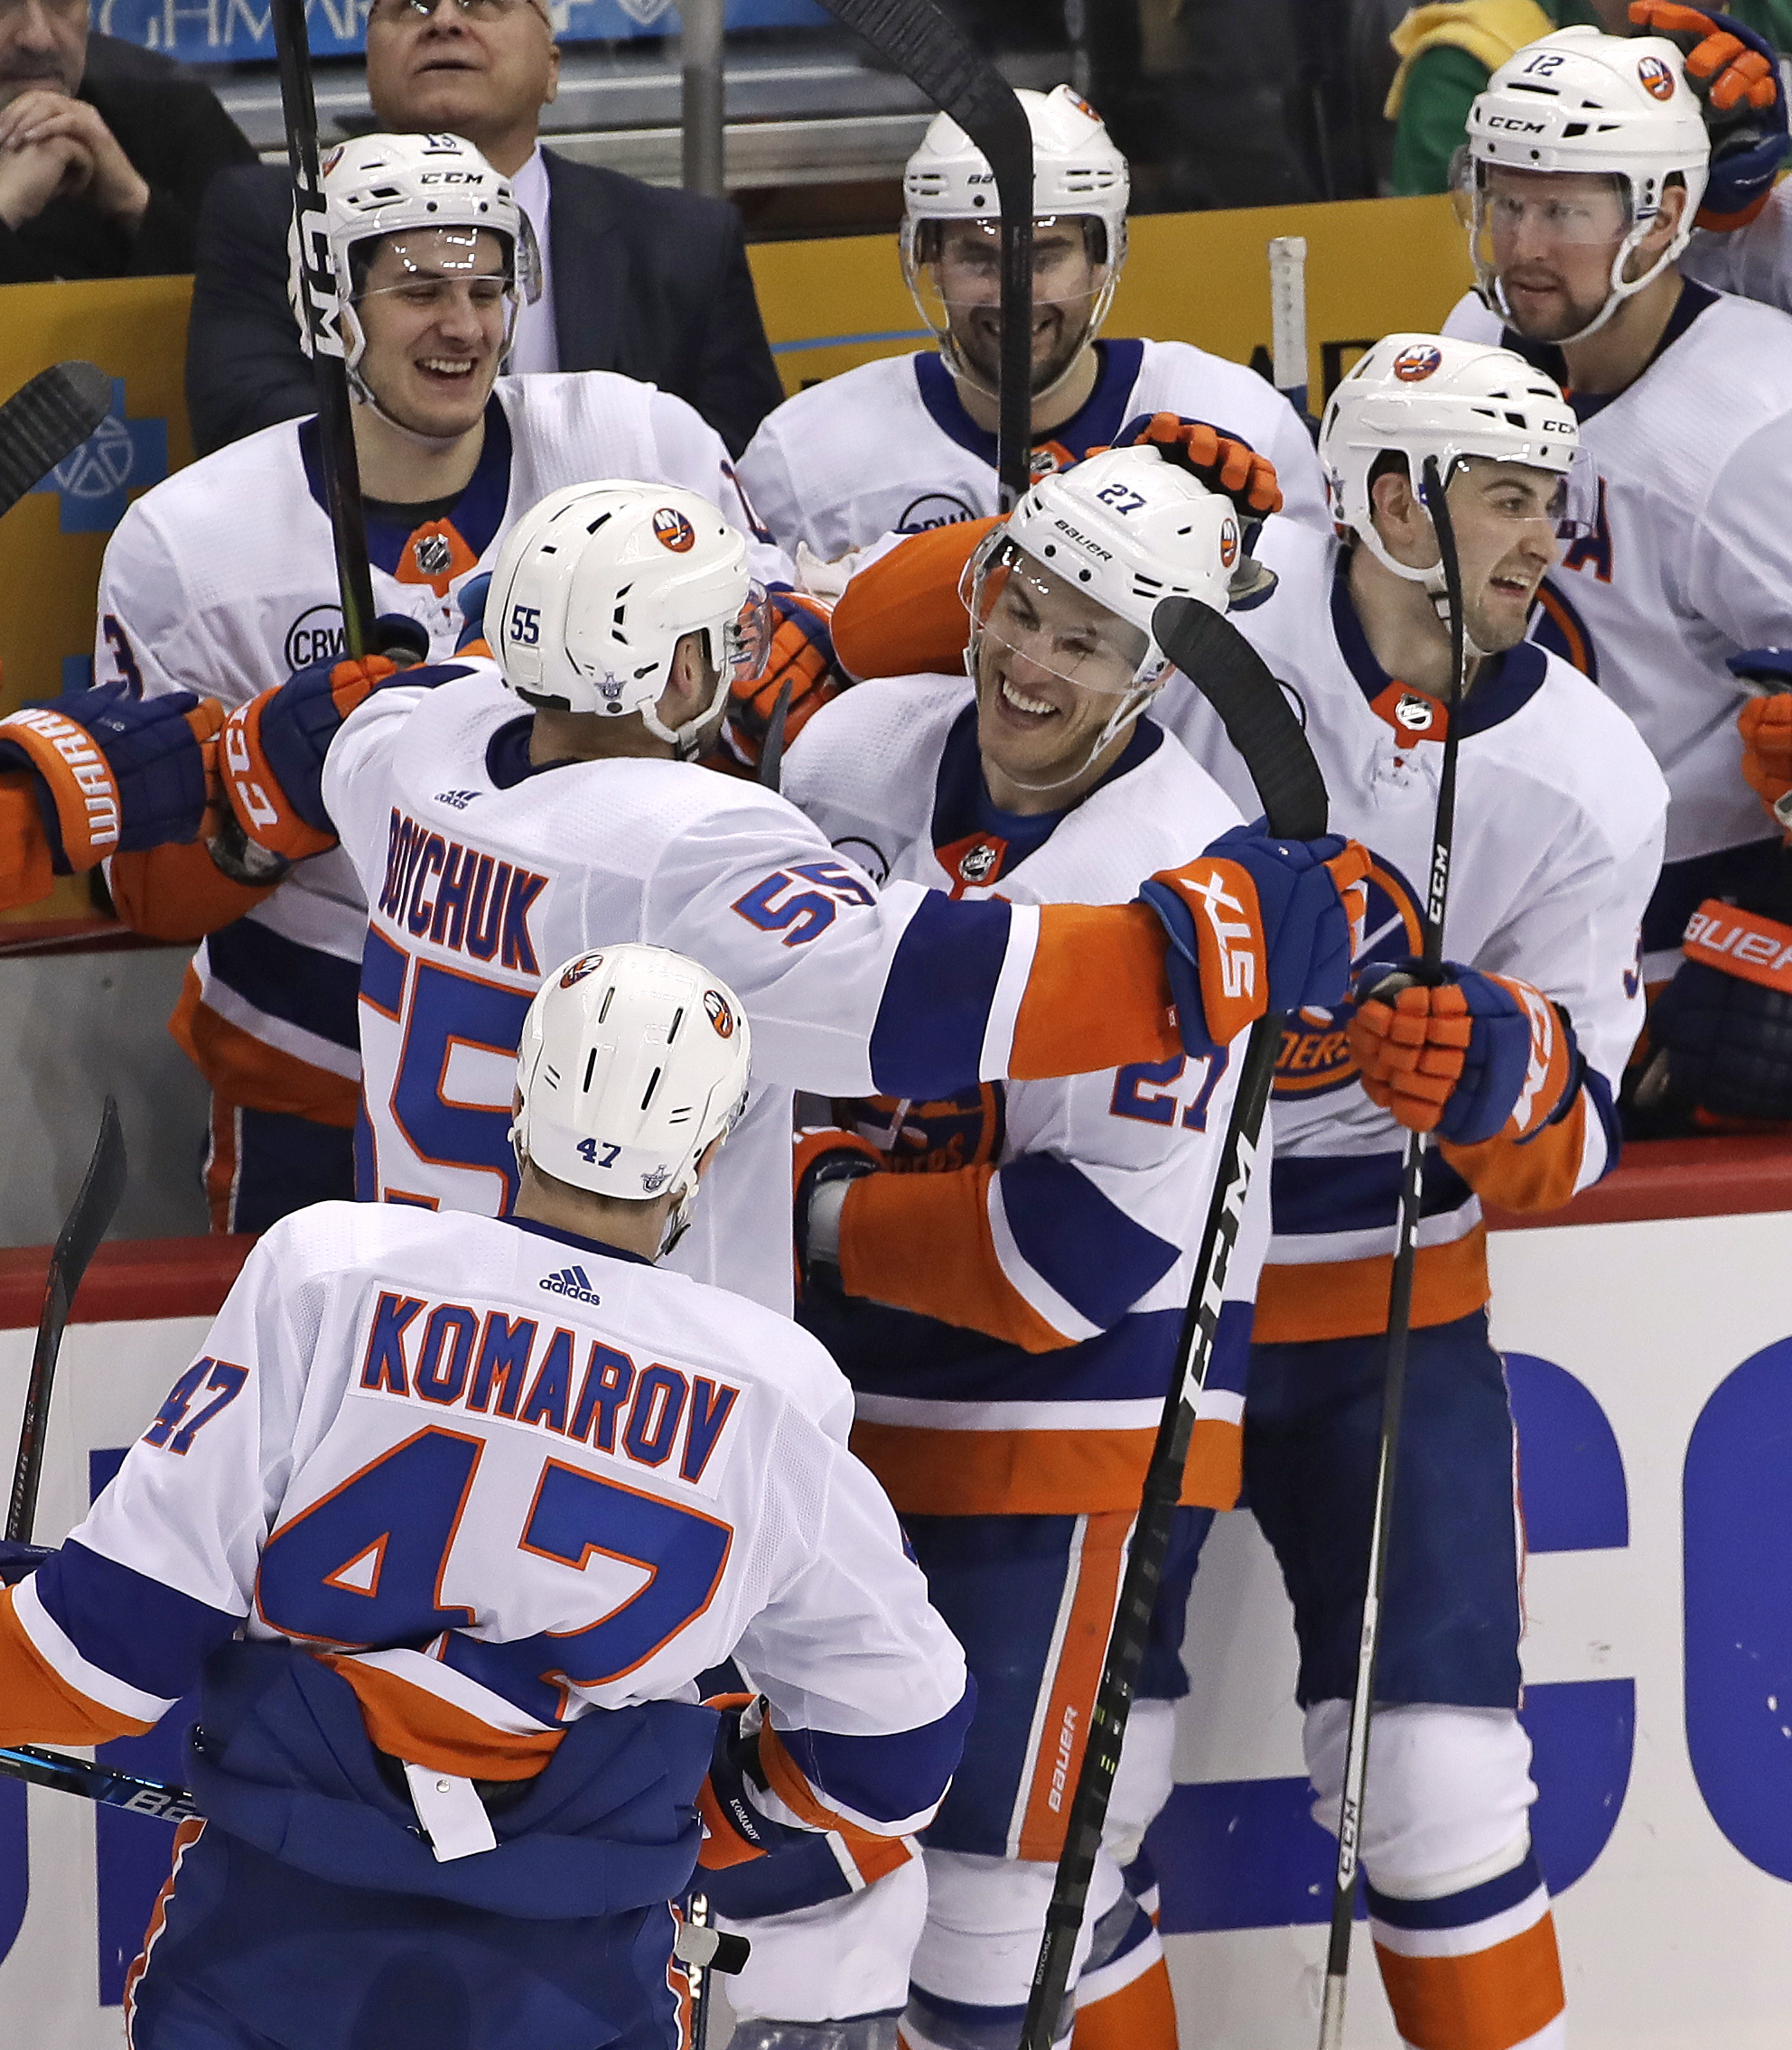 NHL player representatives sound off on playoff format